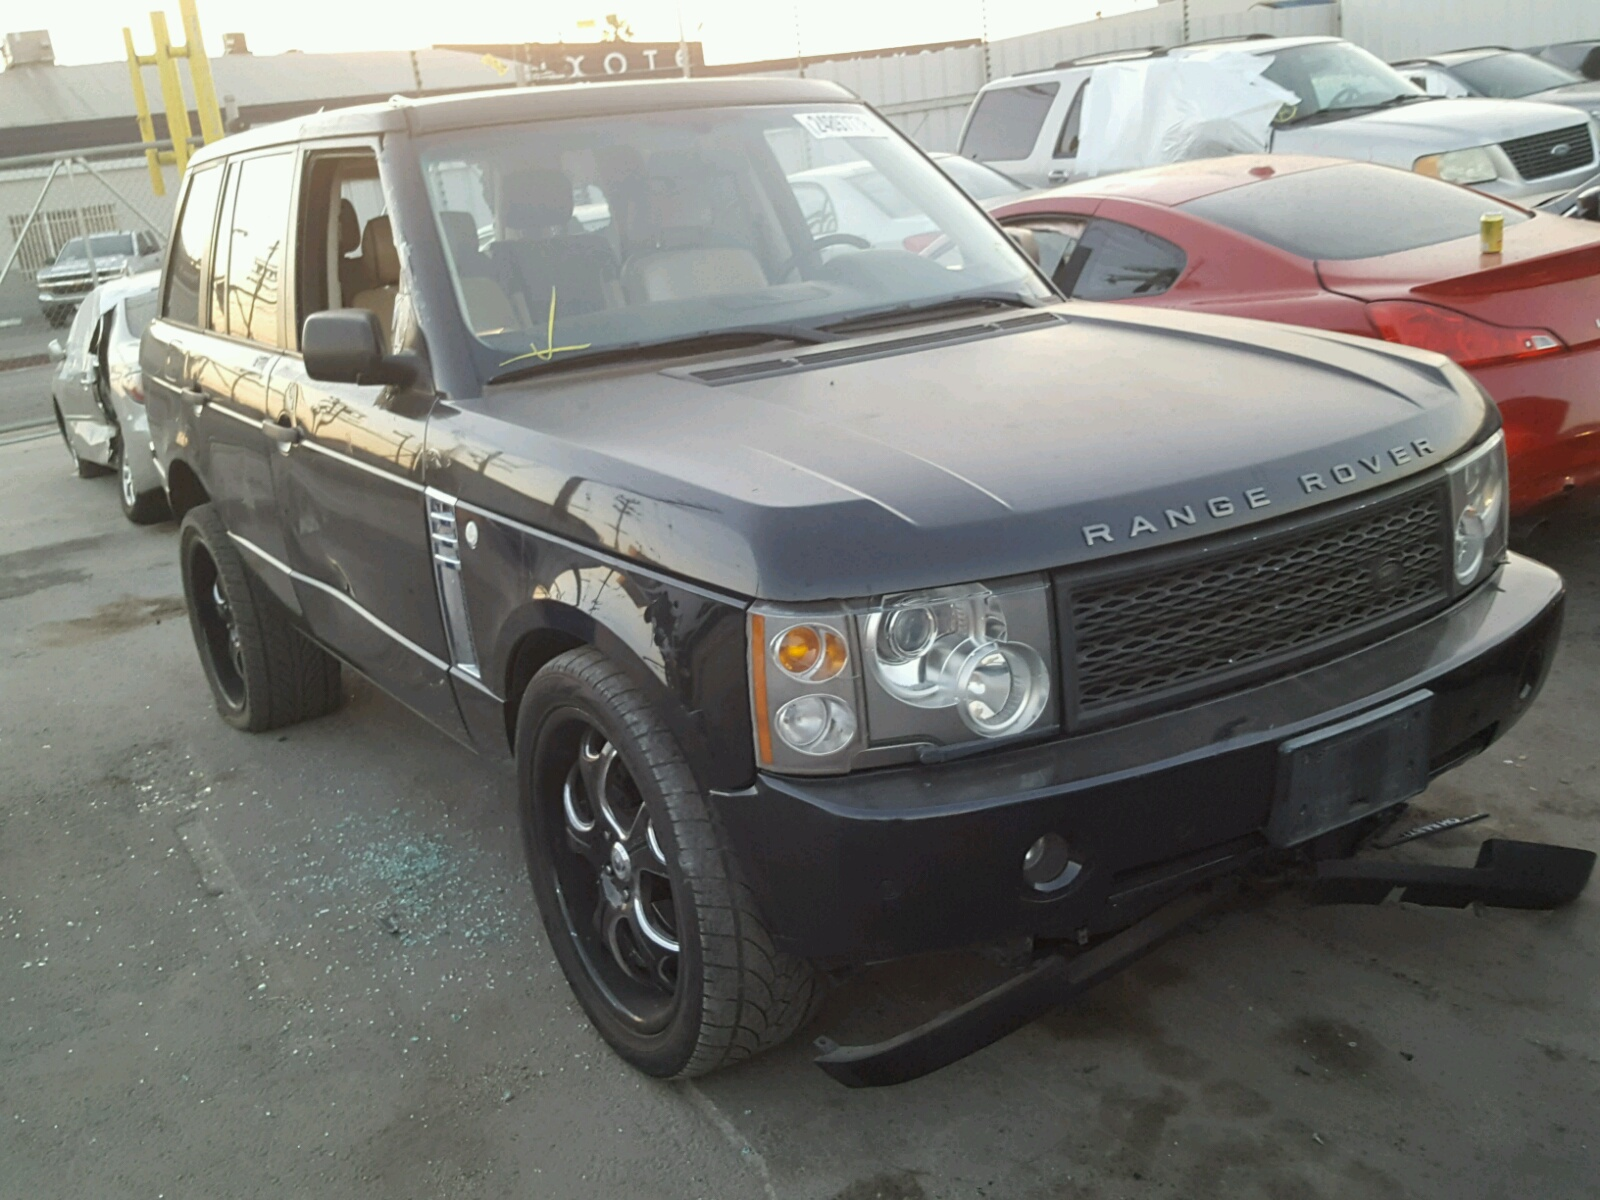 Auto Auction Ended on VIN SALME114X3A 2003 LAND ROVER RANGE